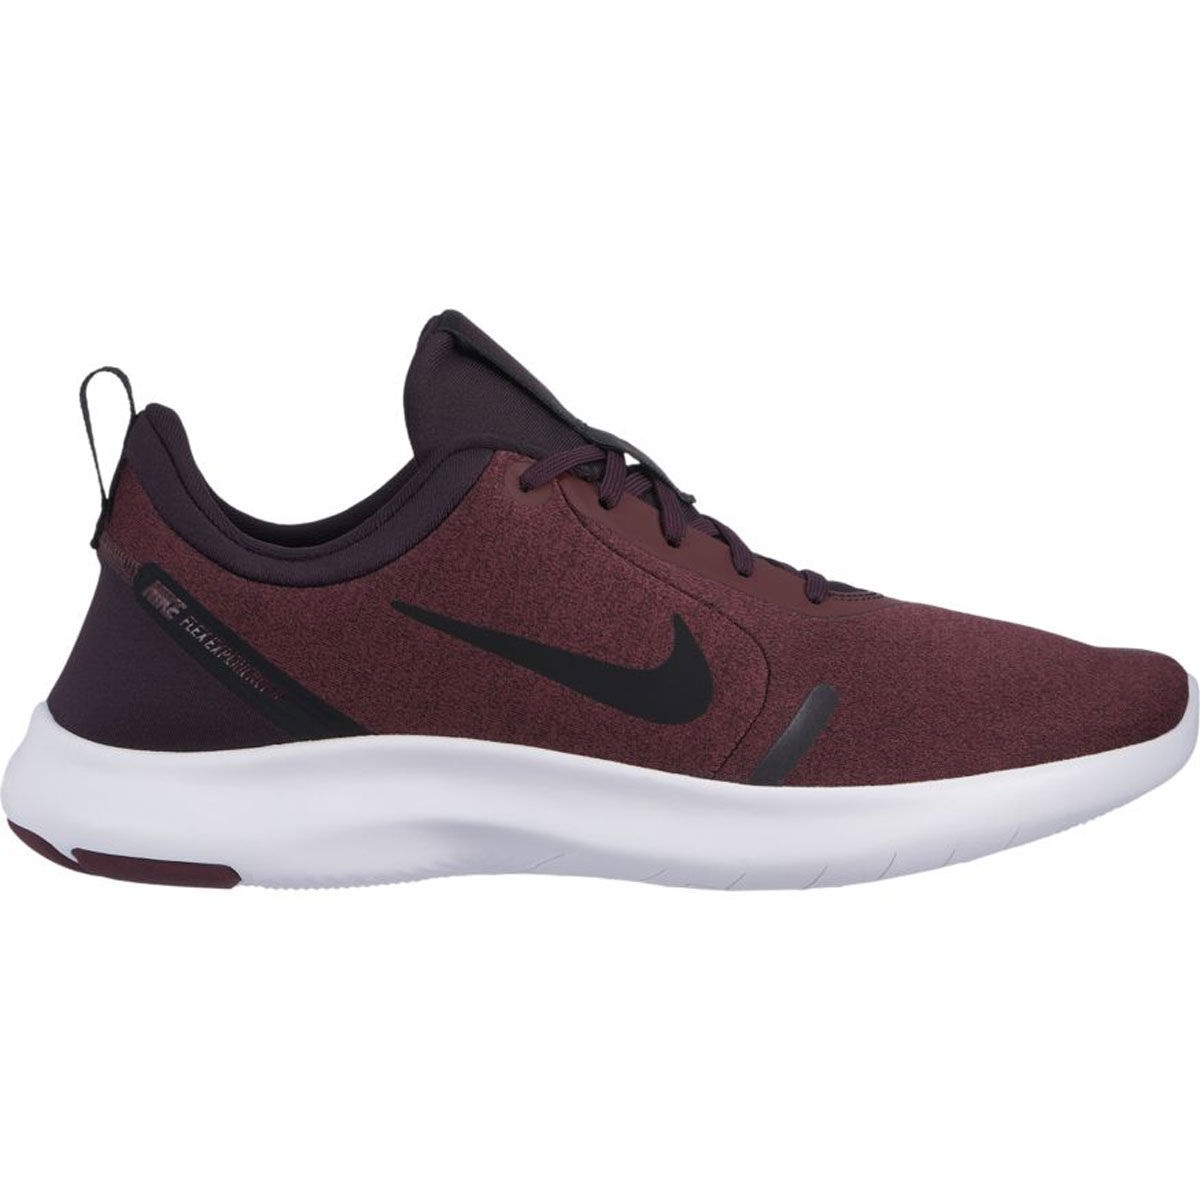 Nike Flex Experience 8 Mens Running Shoe